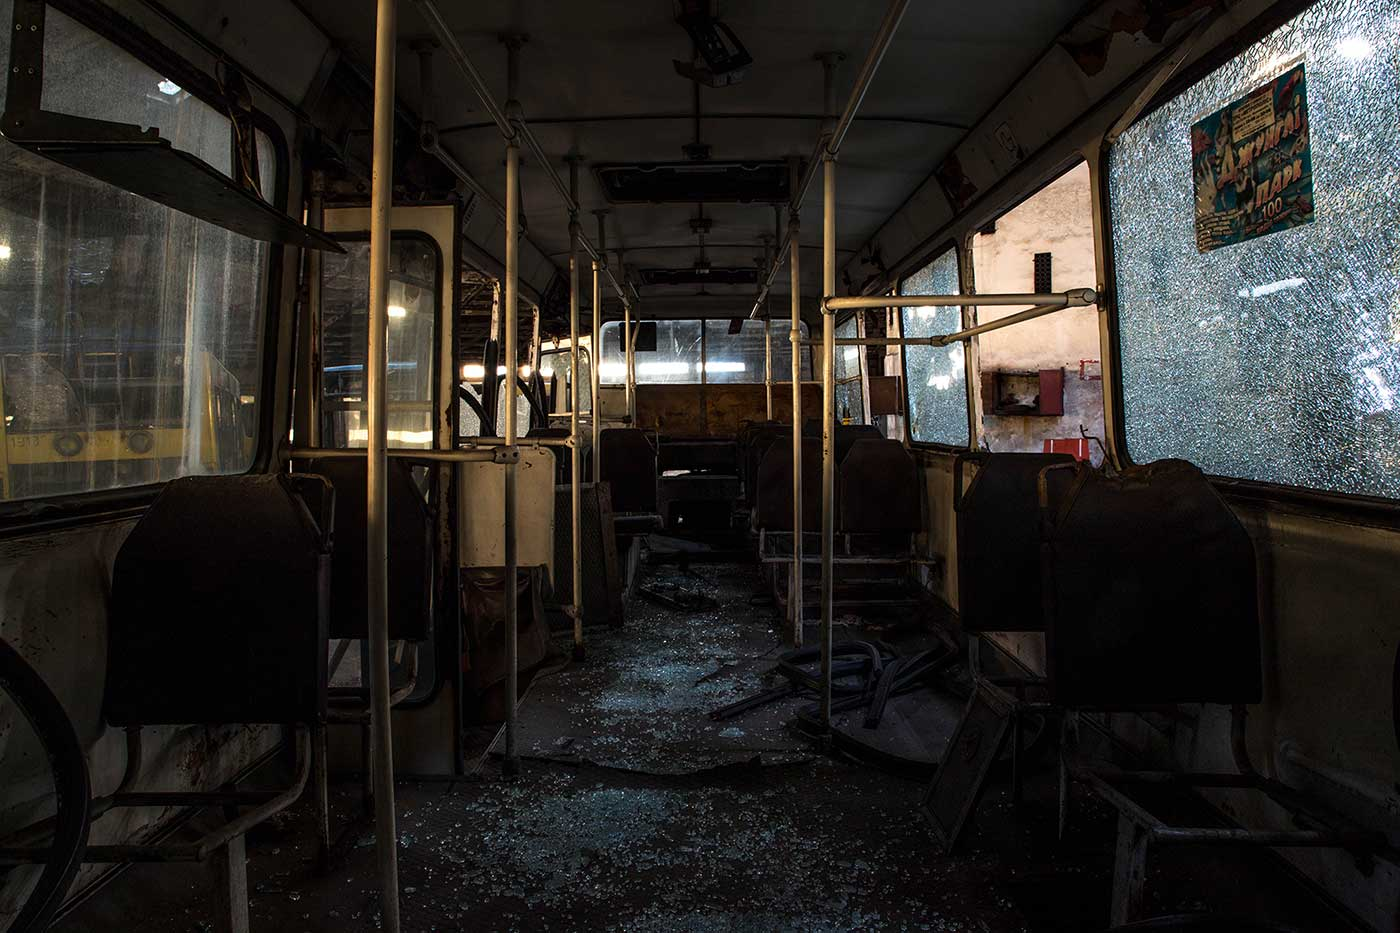 Autobus Park №7 contains an estimated total of 903 abandoned buses. Autobus Park №7: the abandoned bus depot in Kyiv, Ukraine.